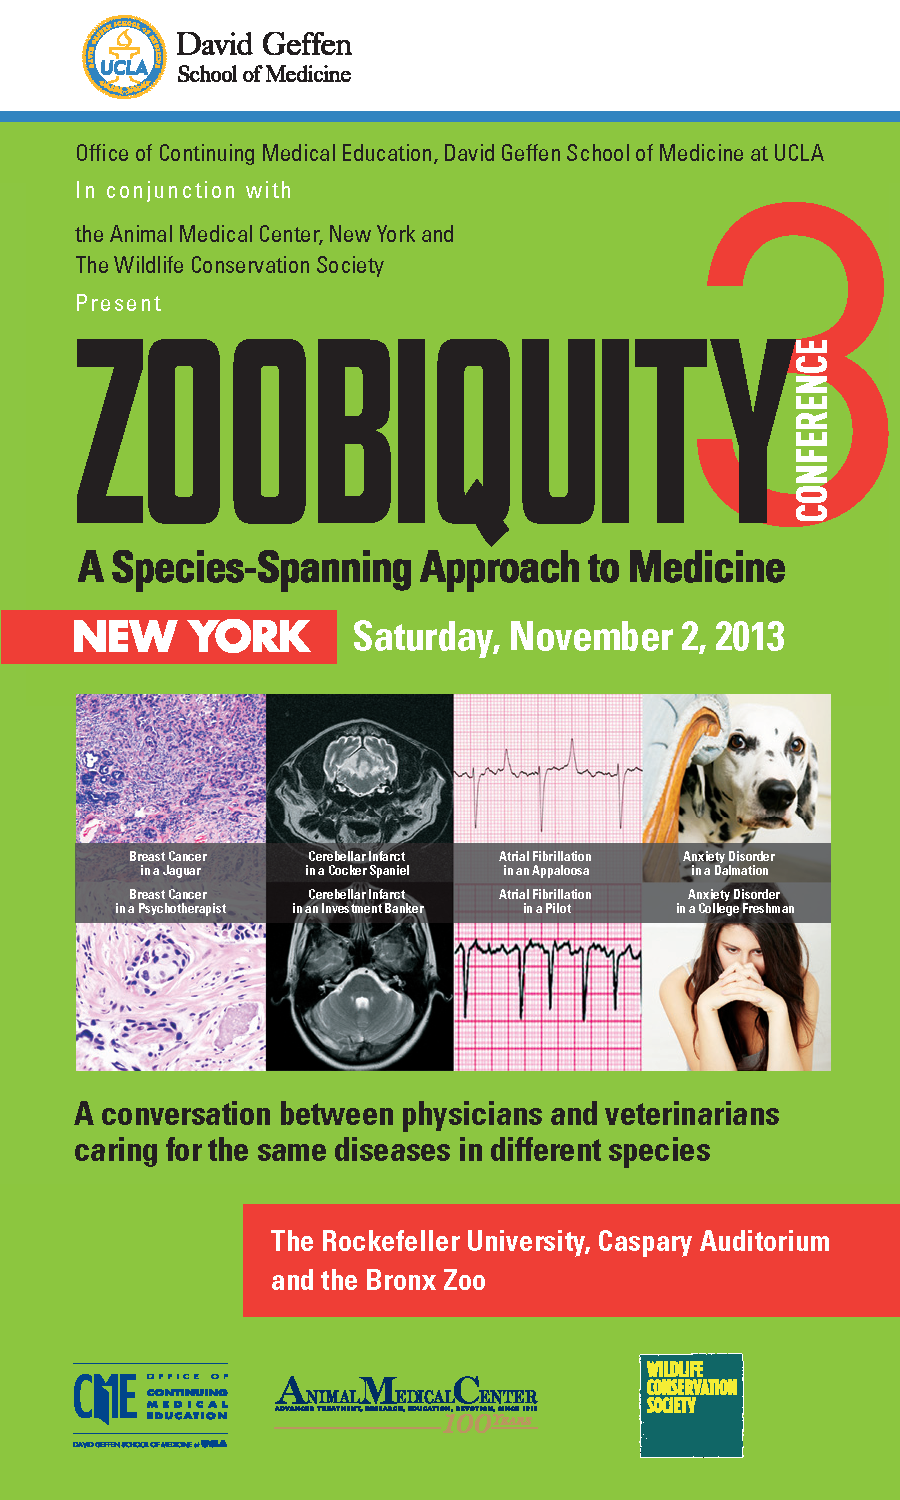 Zoobiquity3_2013_FINAL_brochure_Page_1.png